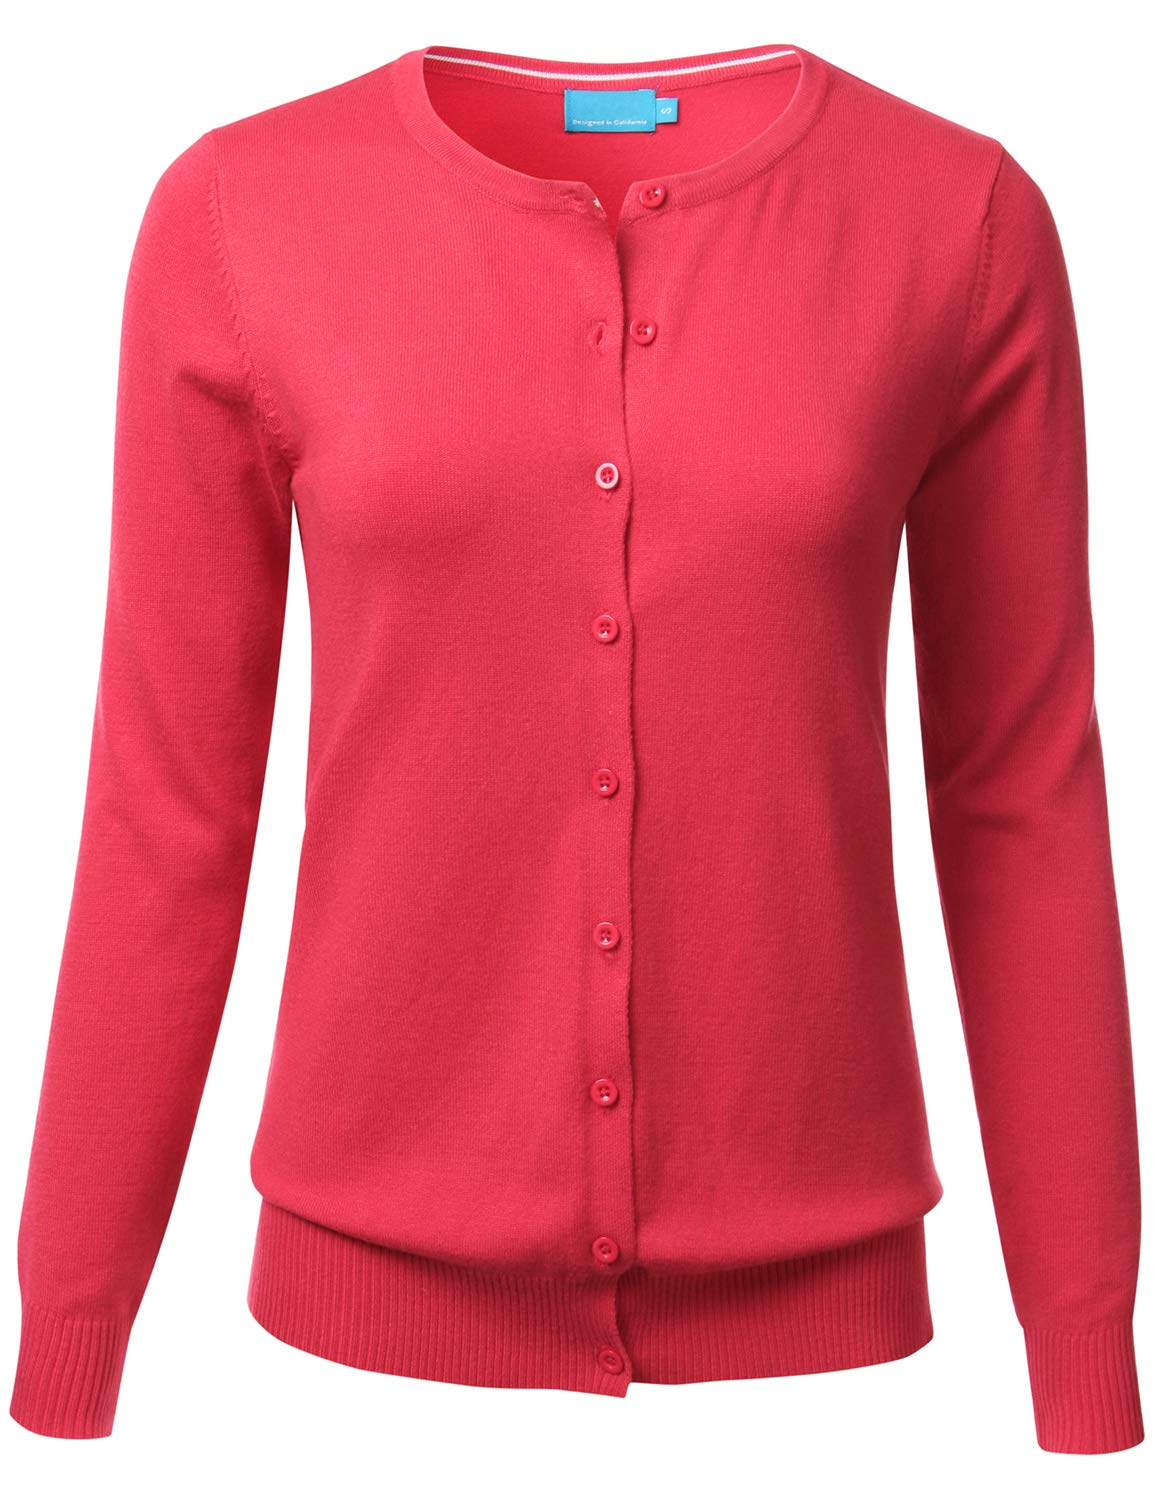 a77e3fd5a5355 Galleon - FLORIA Women Button Down Crew Neck Long Sleeve Soft Knit Cardigan  Sweater Coral 1XL